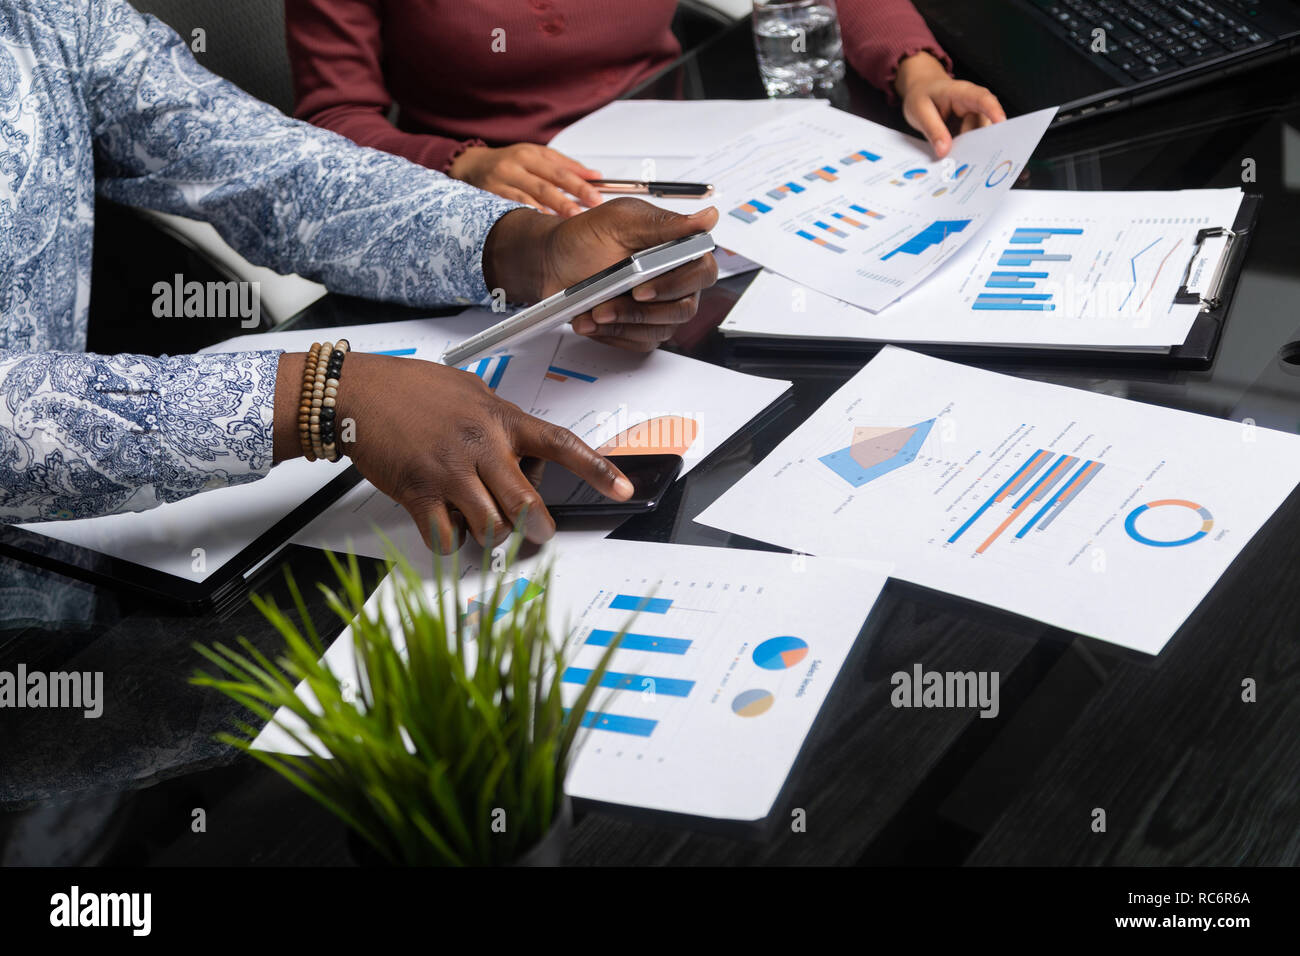 hands of dark-skinned people hold calculator against background of financial documents in business space closeup - Stock Image